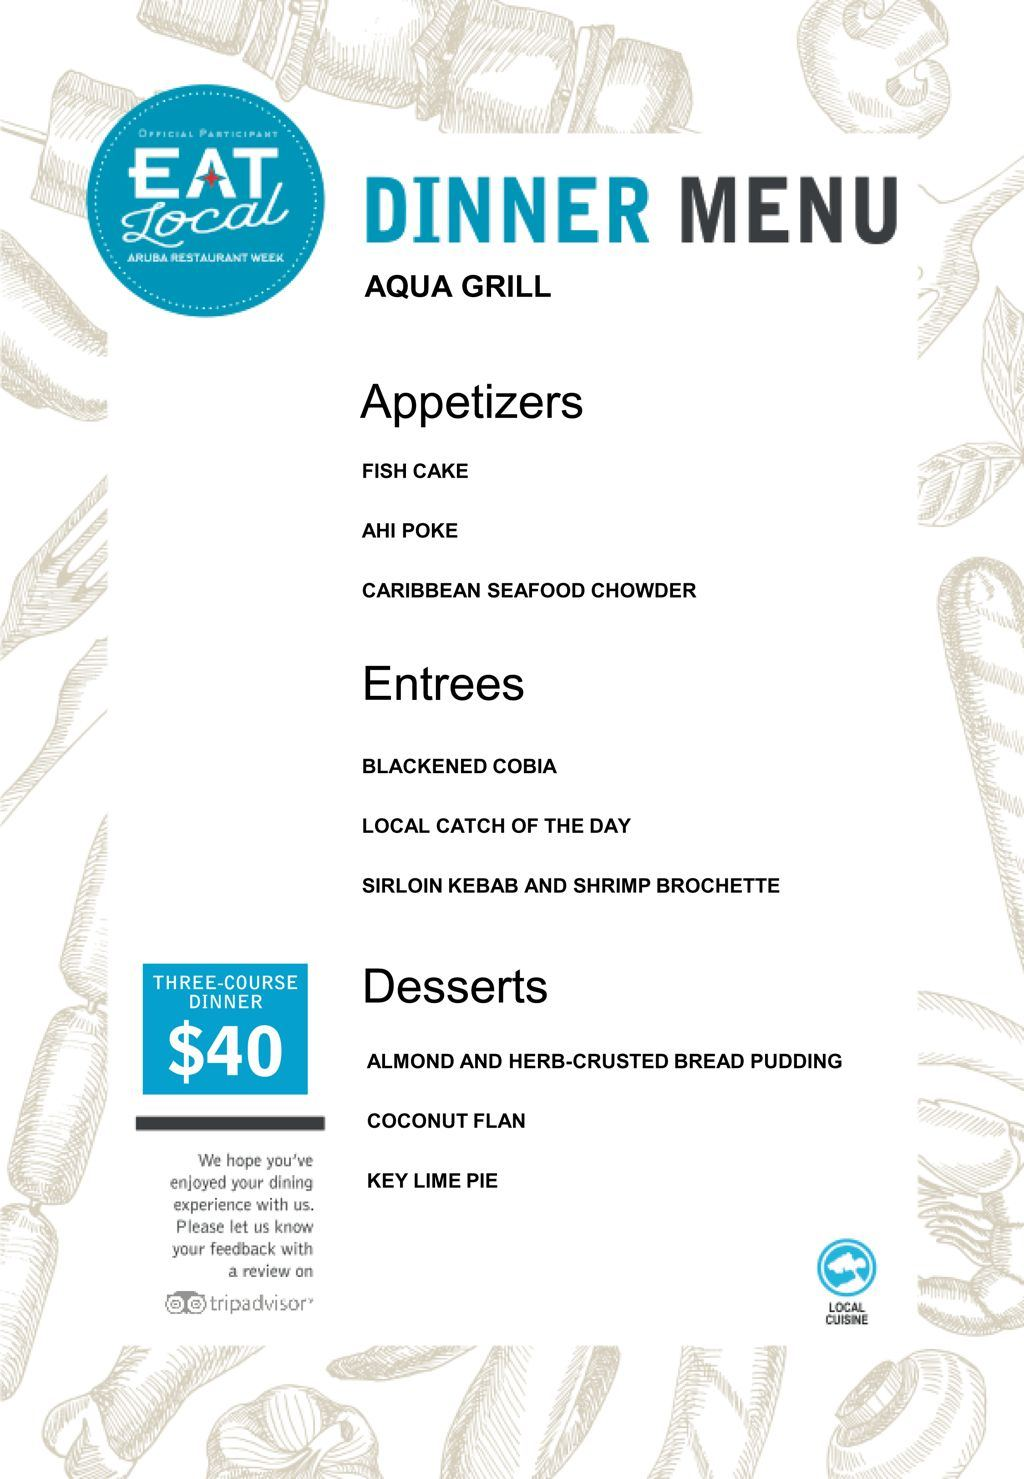 Aqua Grill Restaurant - Eat Local 2017